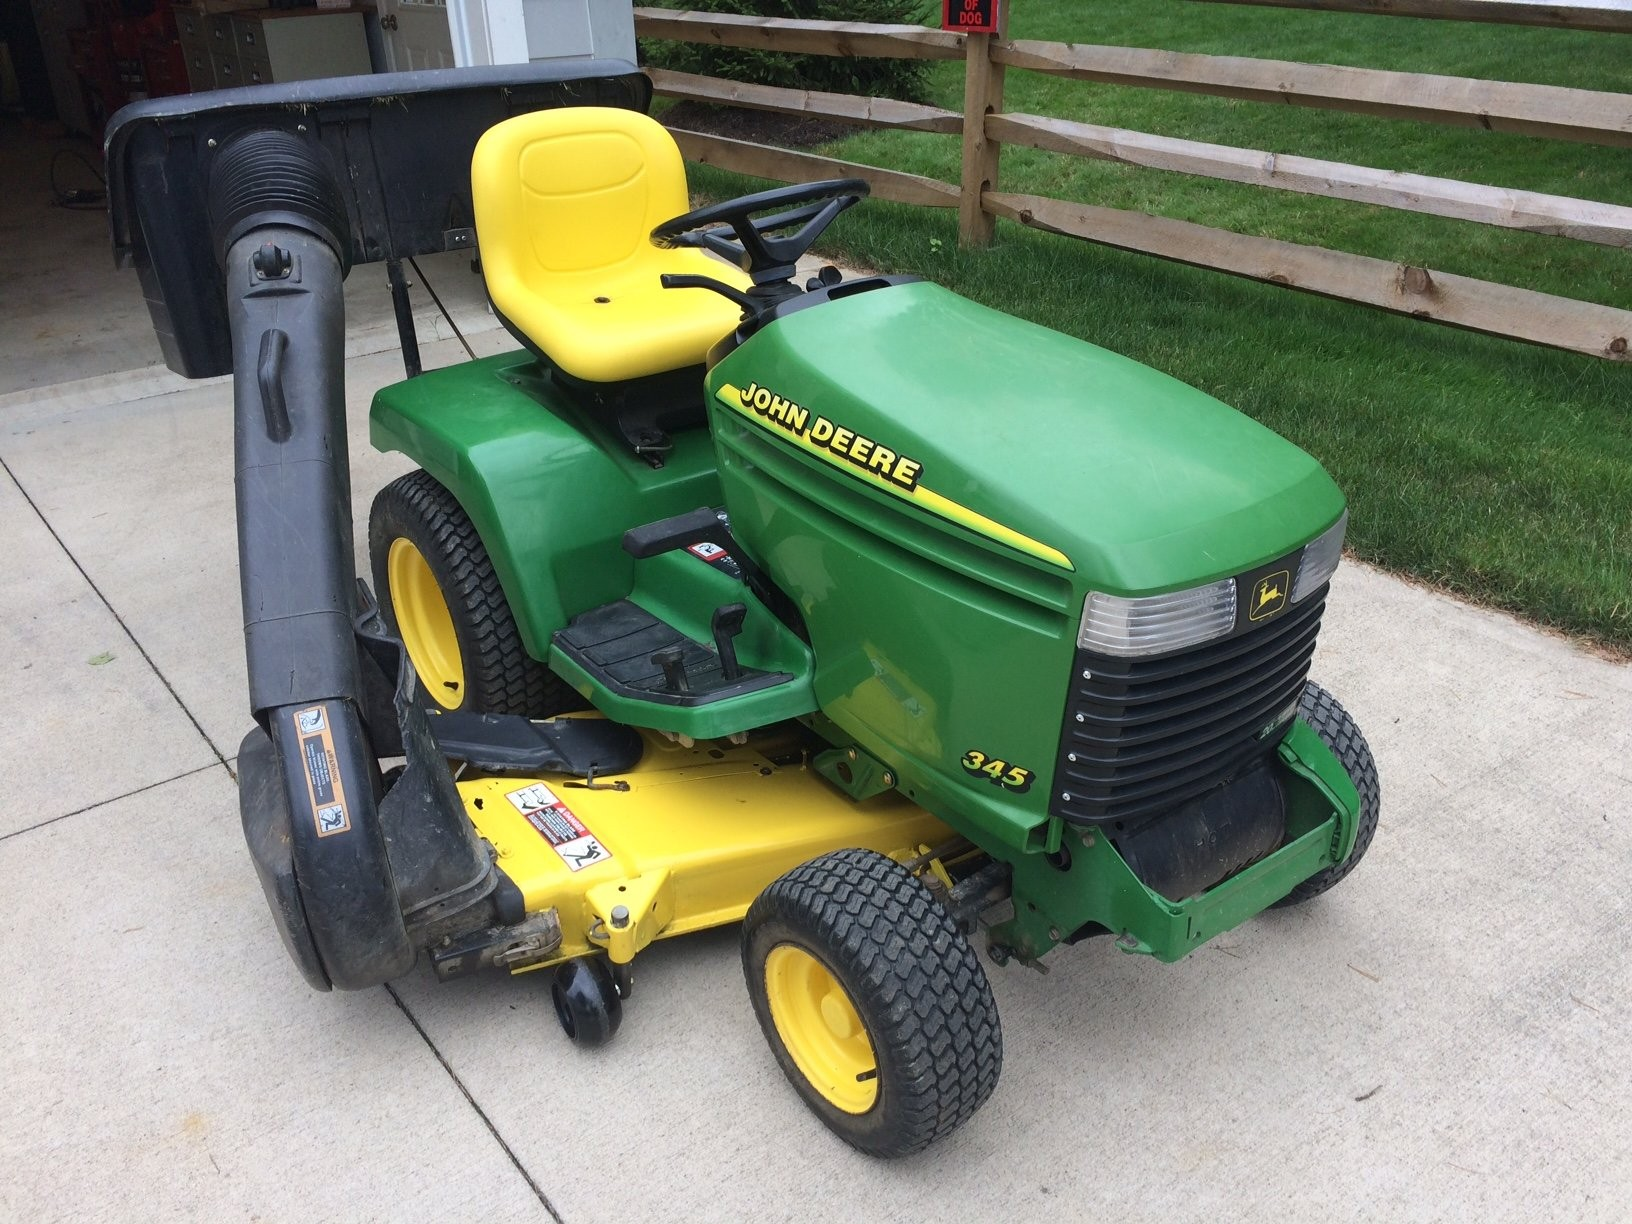 John Deere Modle 345 Electrical 1998 John Deere 345 Cuts Out Of John Deere Modle 345 Electrical